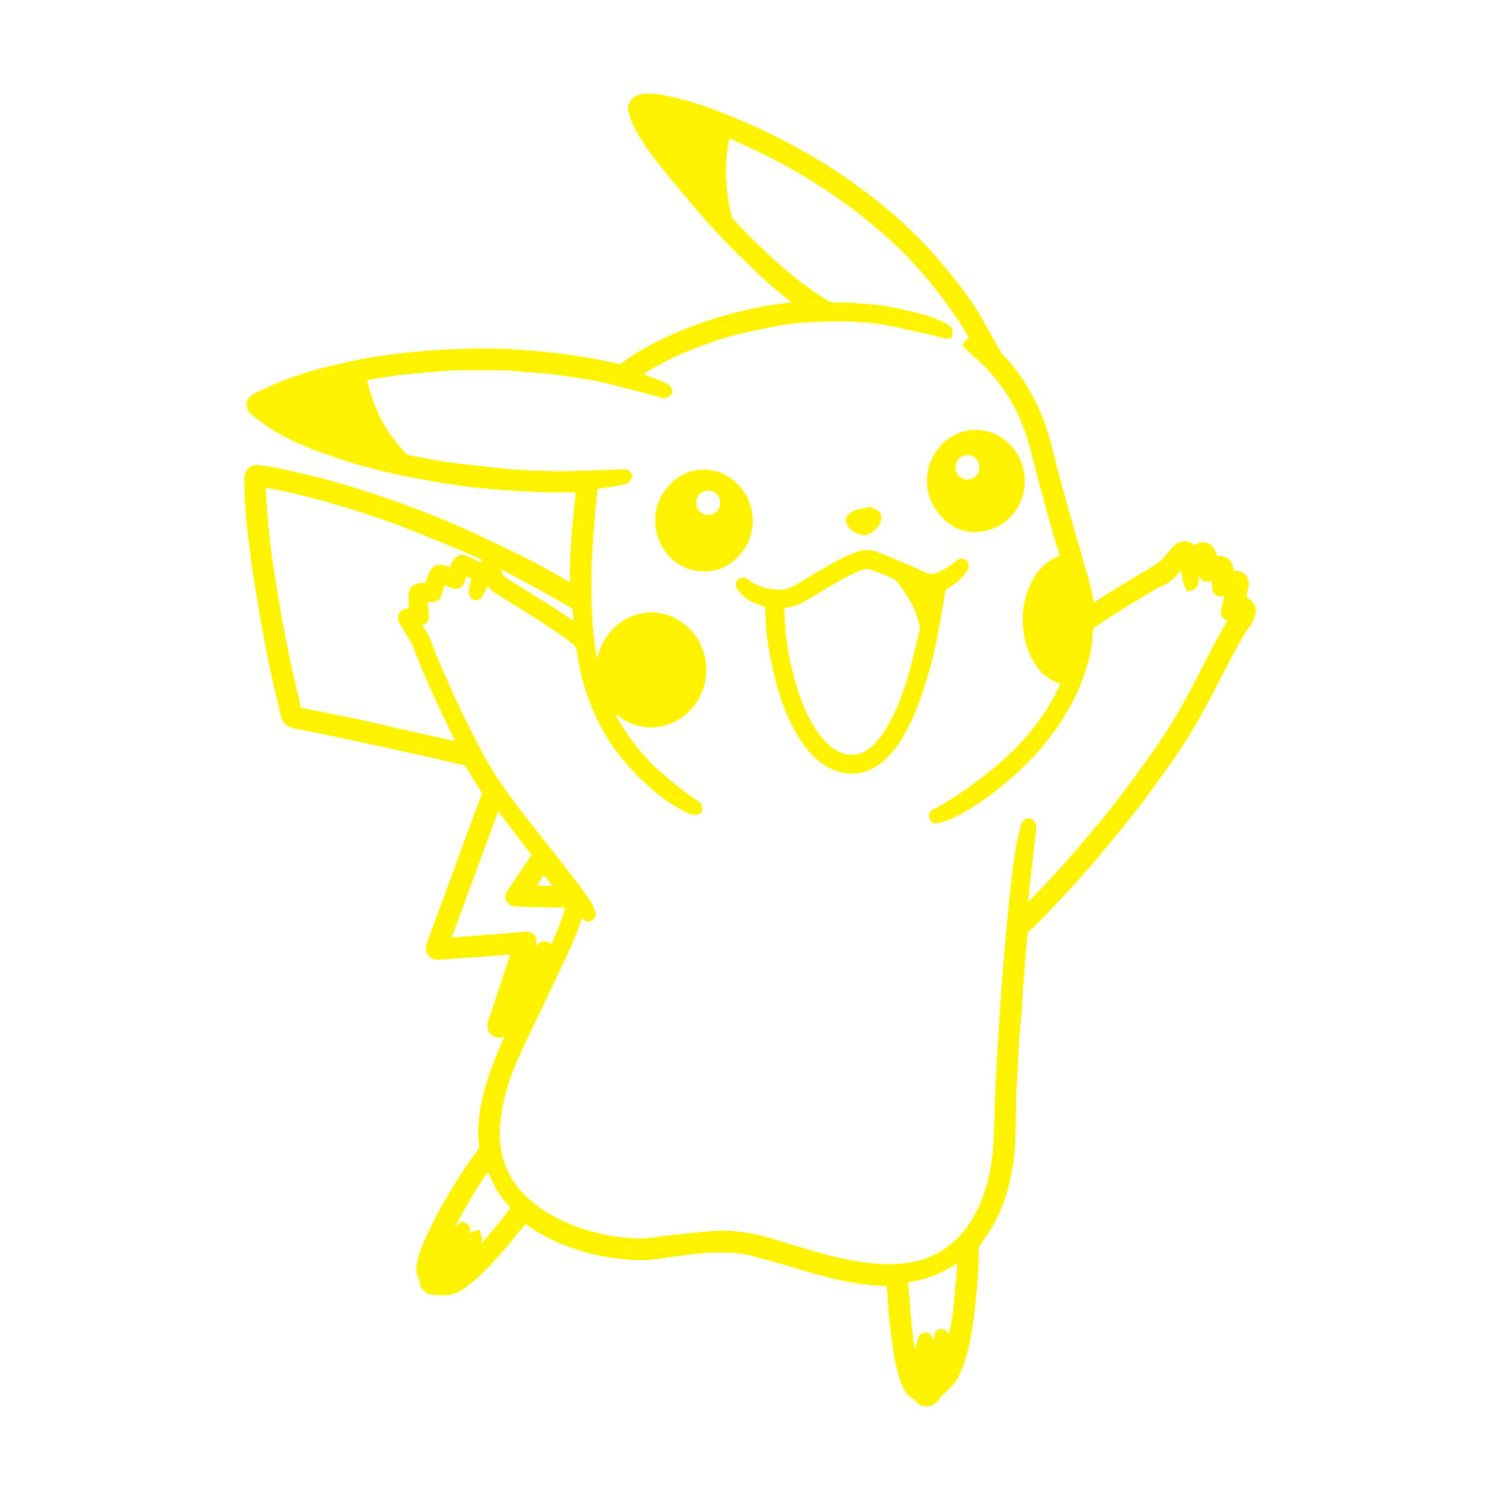 Pokemon Pikachu Silhouette Peel And Stick Wall Decals Peel And Stick Decals The Mural Store